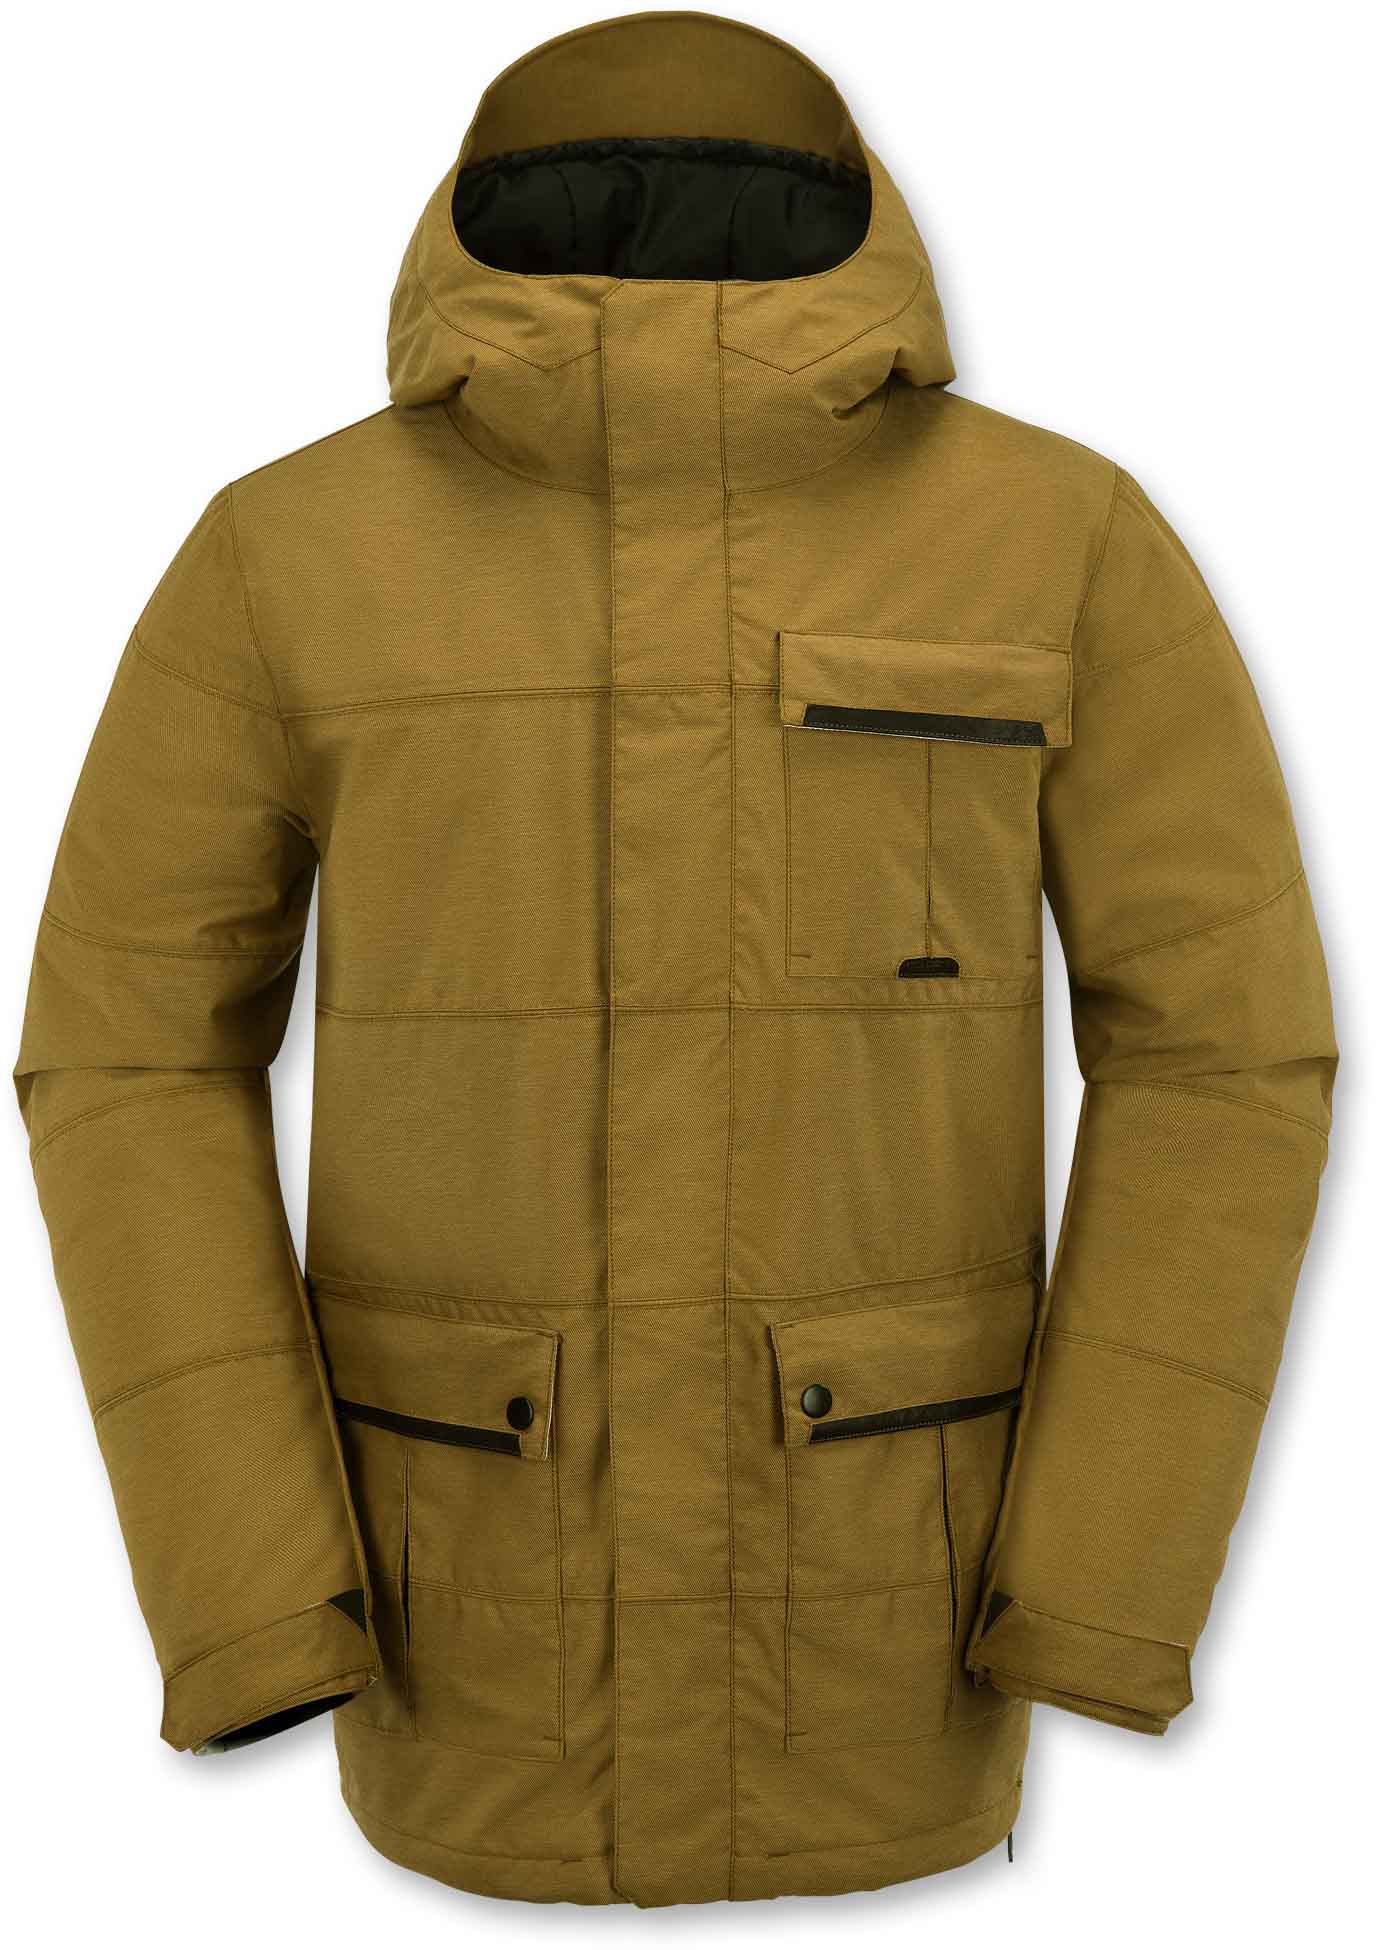 image volcom-captain-insulated-jacket-caramel-jpg